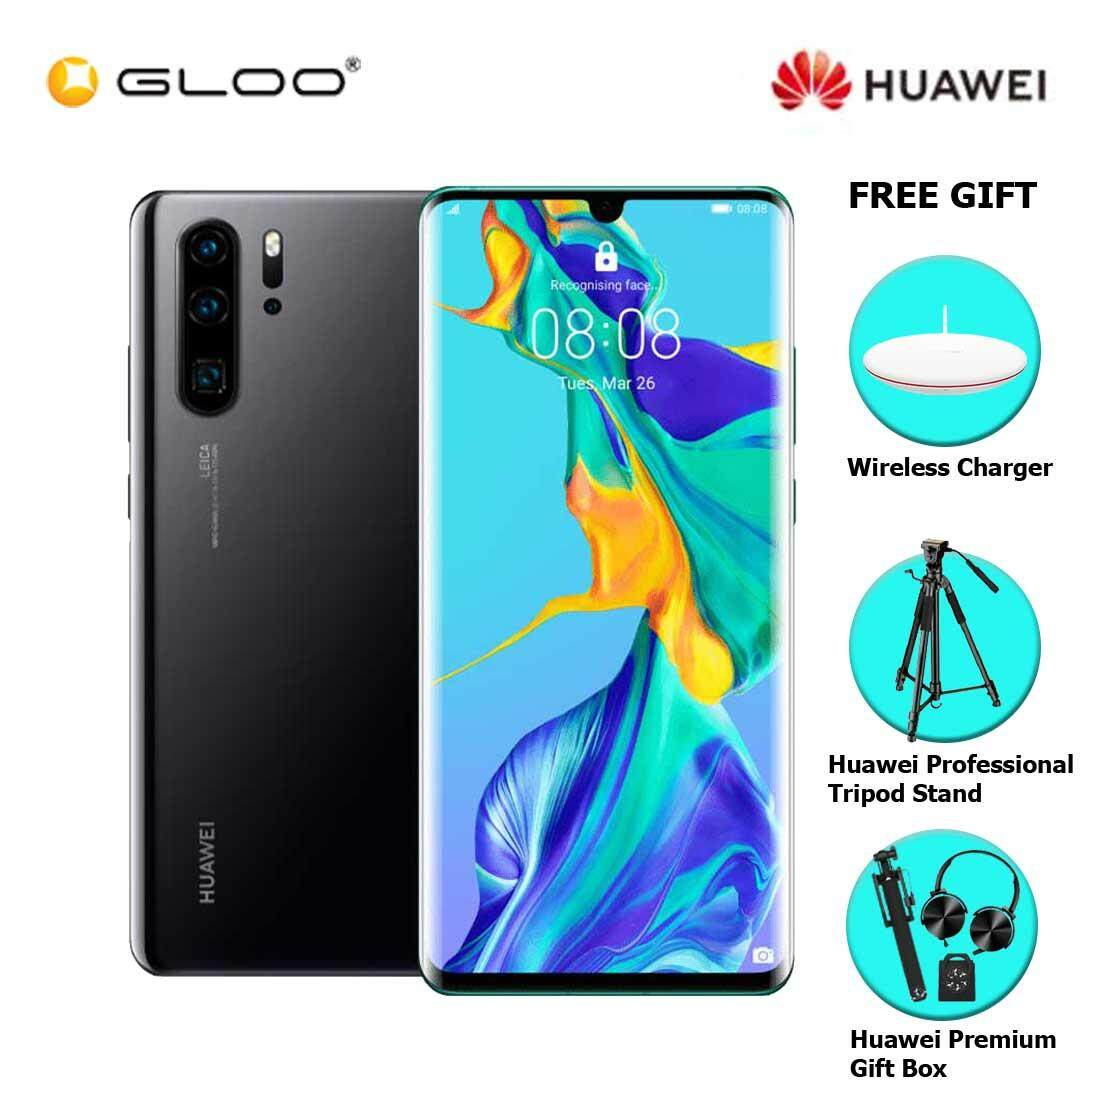 Huawei P30 Pro 8GB+256GB Black + FREE Huawei Wireless Charges CP60 6901443259328,Huawei Professional Tripod Stand,Premium Gift Box (Headset/Selfie Stick/iRing)